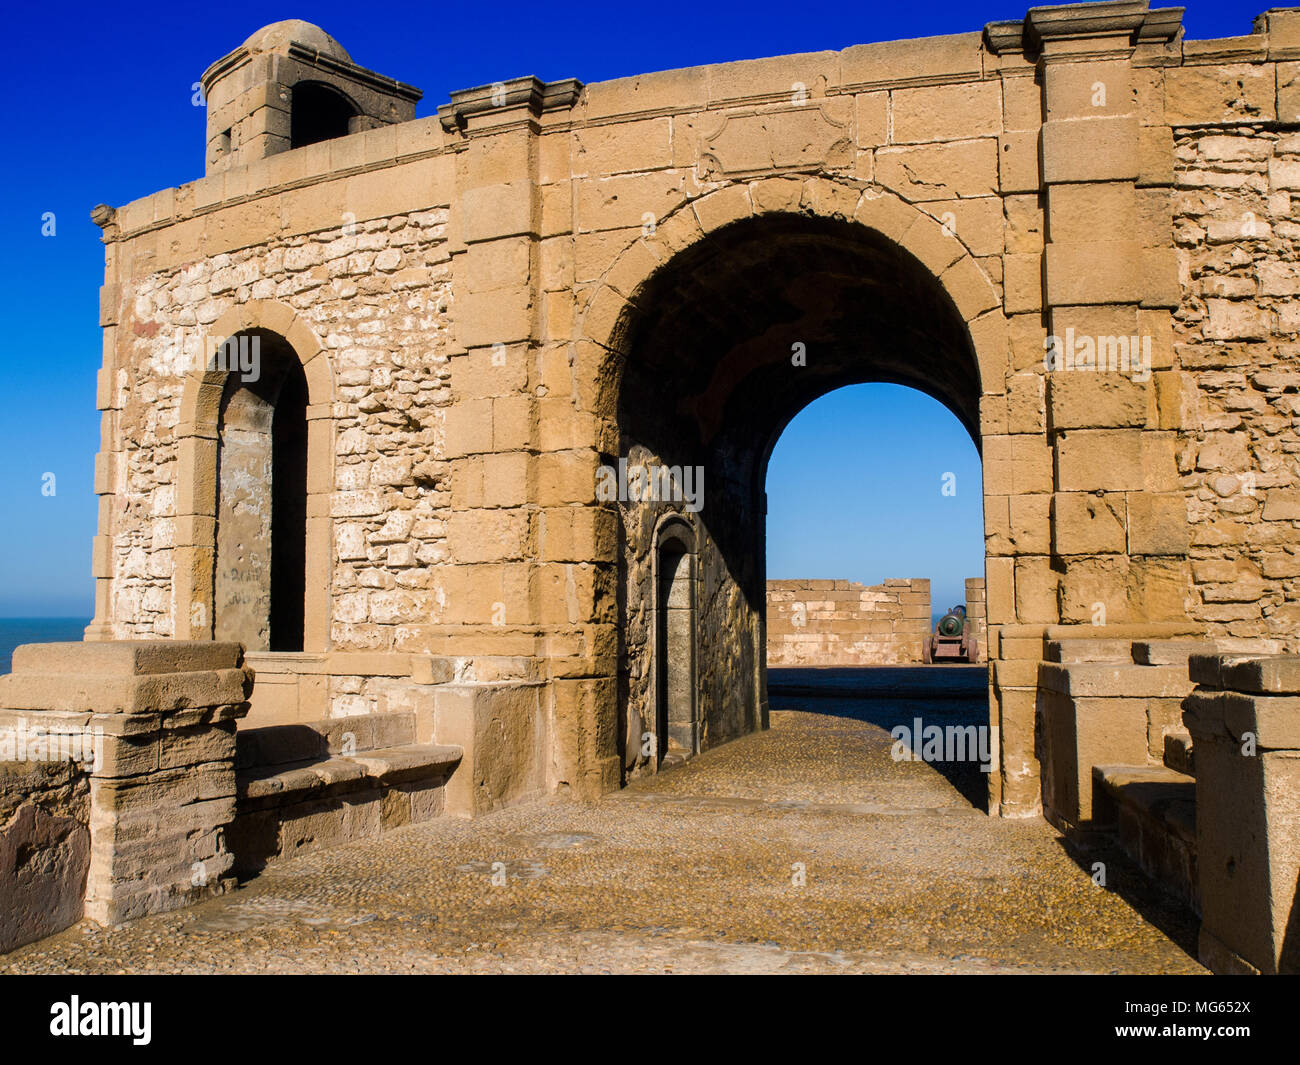 The bastion in the walled town of Essaouira, Morocco - Stock Image